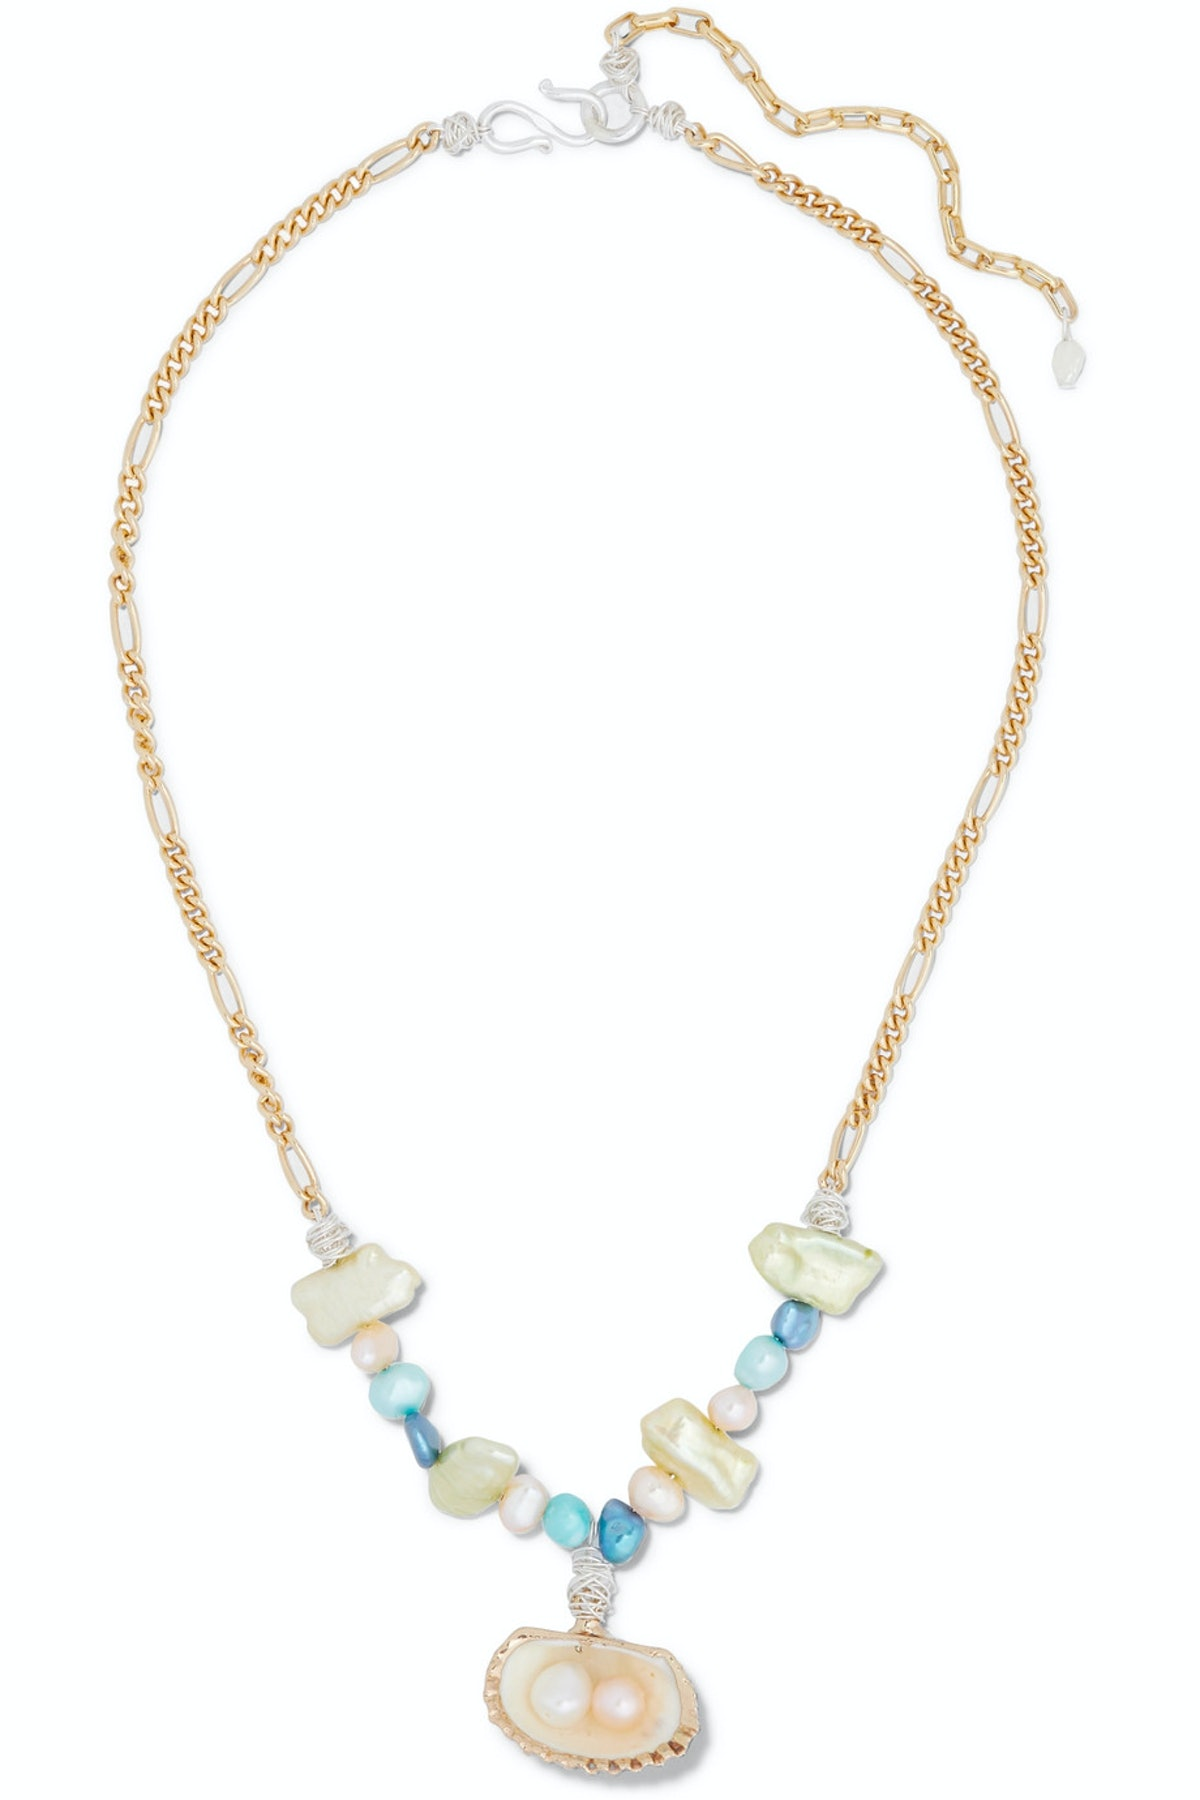 Lady Marmalade Gold-Plated, Shell And Pearl Necklace